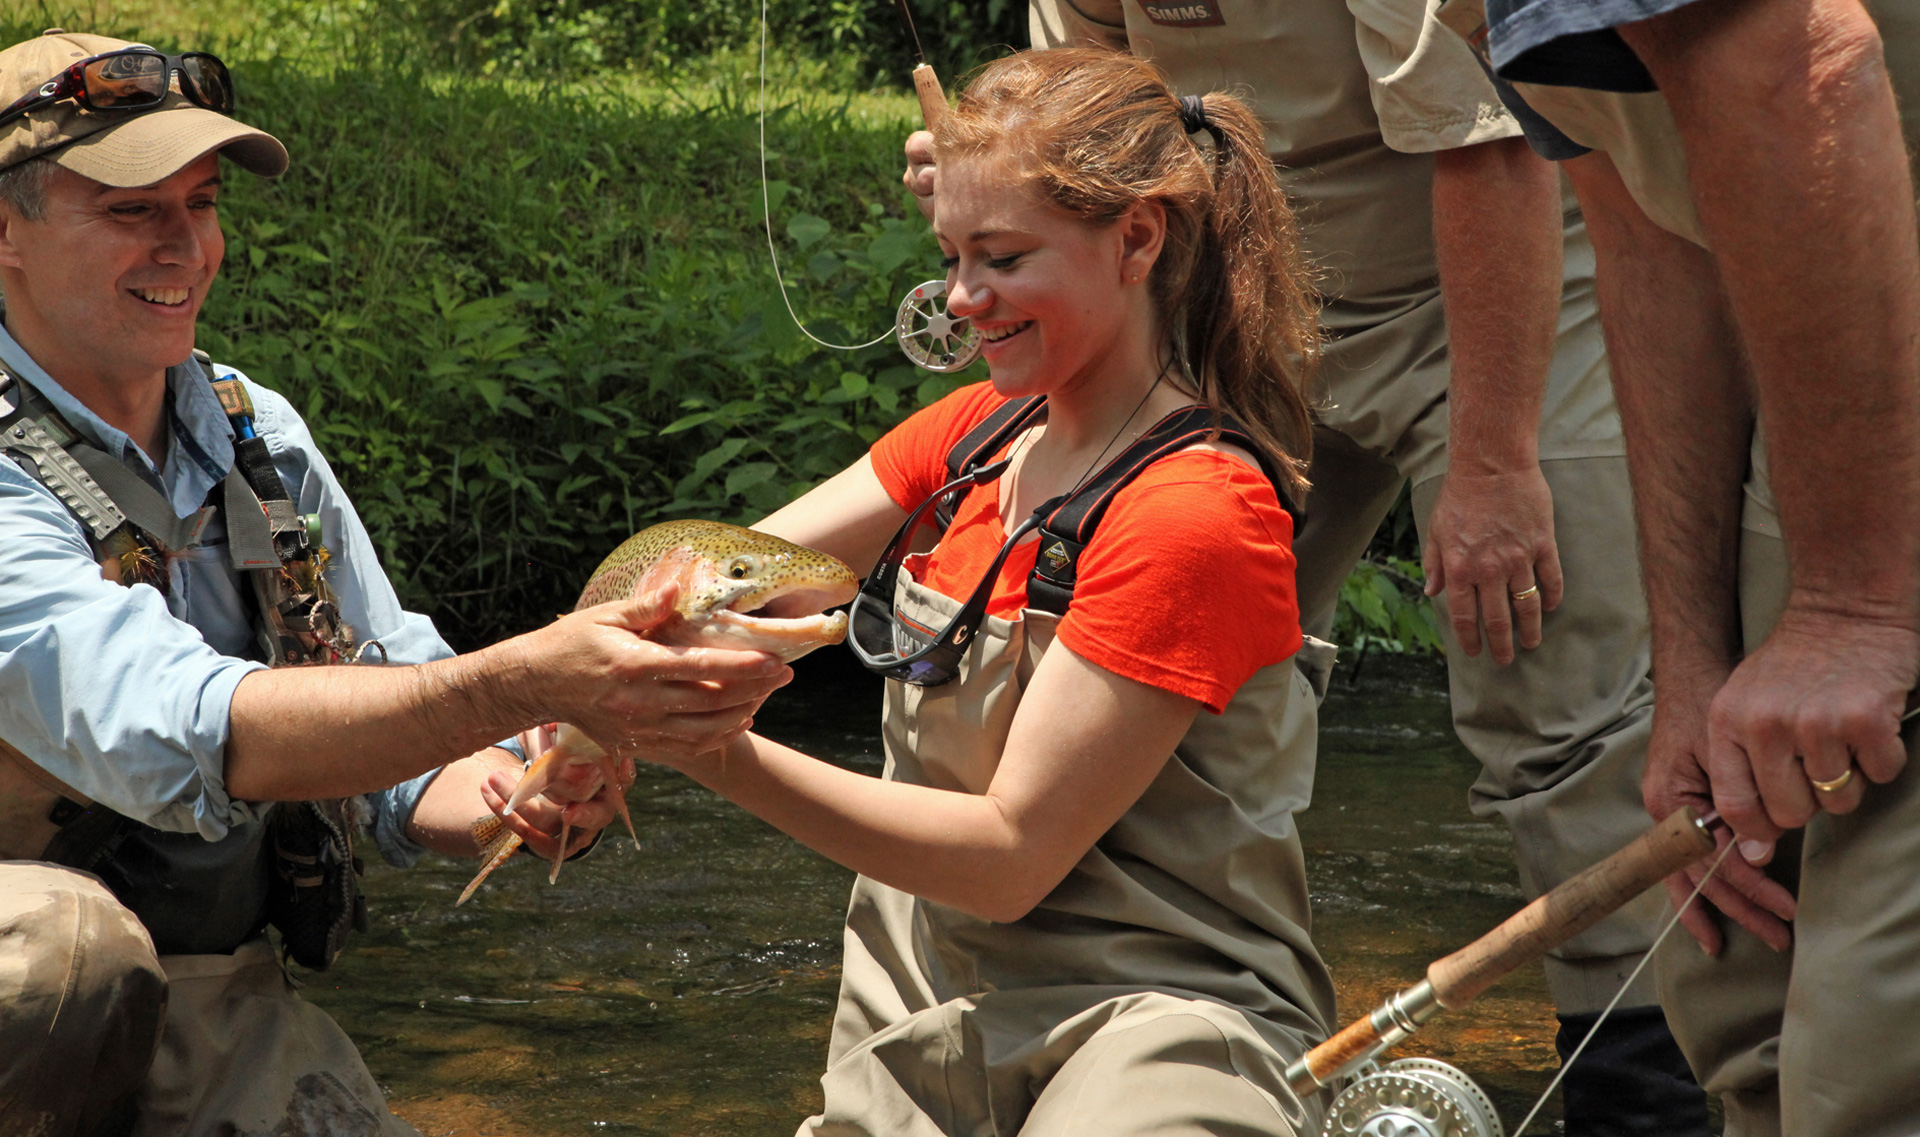 A smiling teenage girl and a fishing guide hold a rainbow trout caught while fishing in Blue Ridge, Georgia